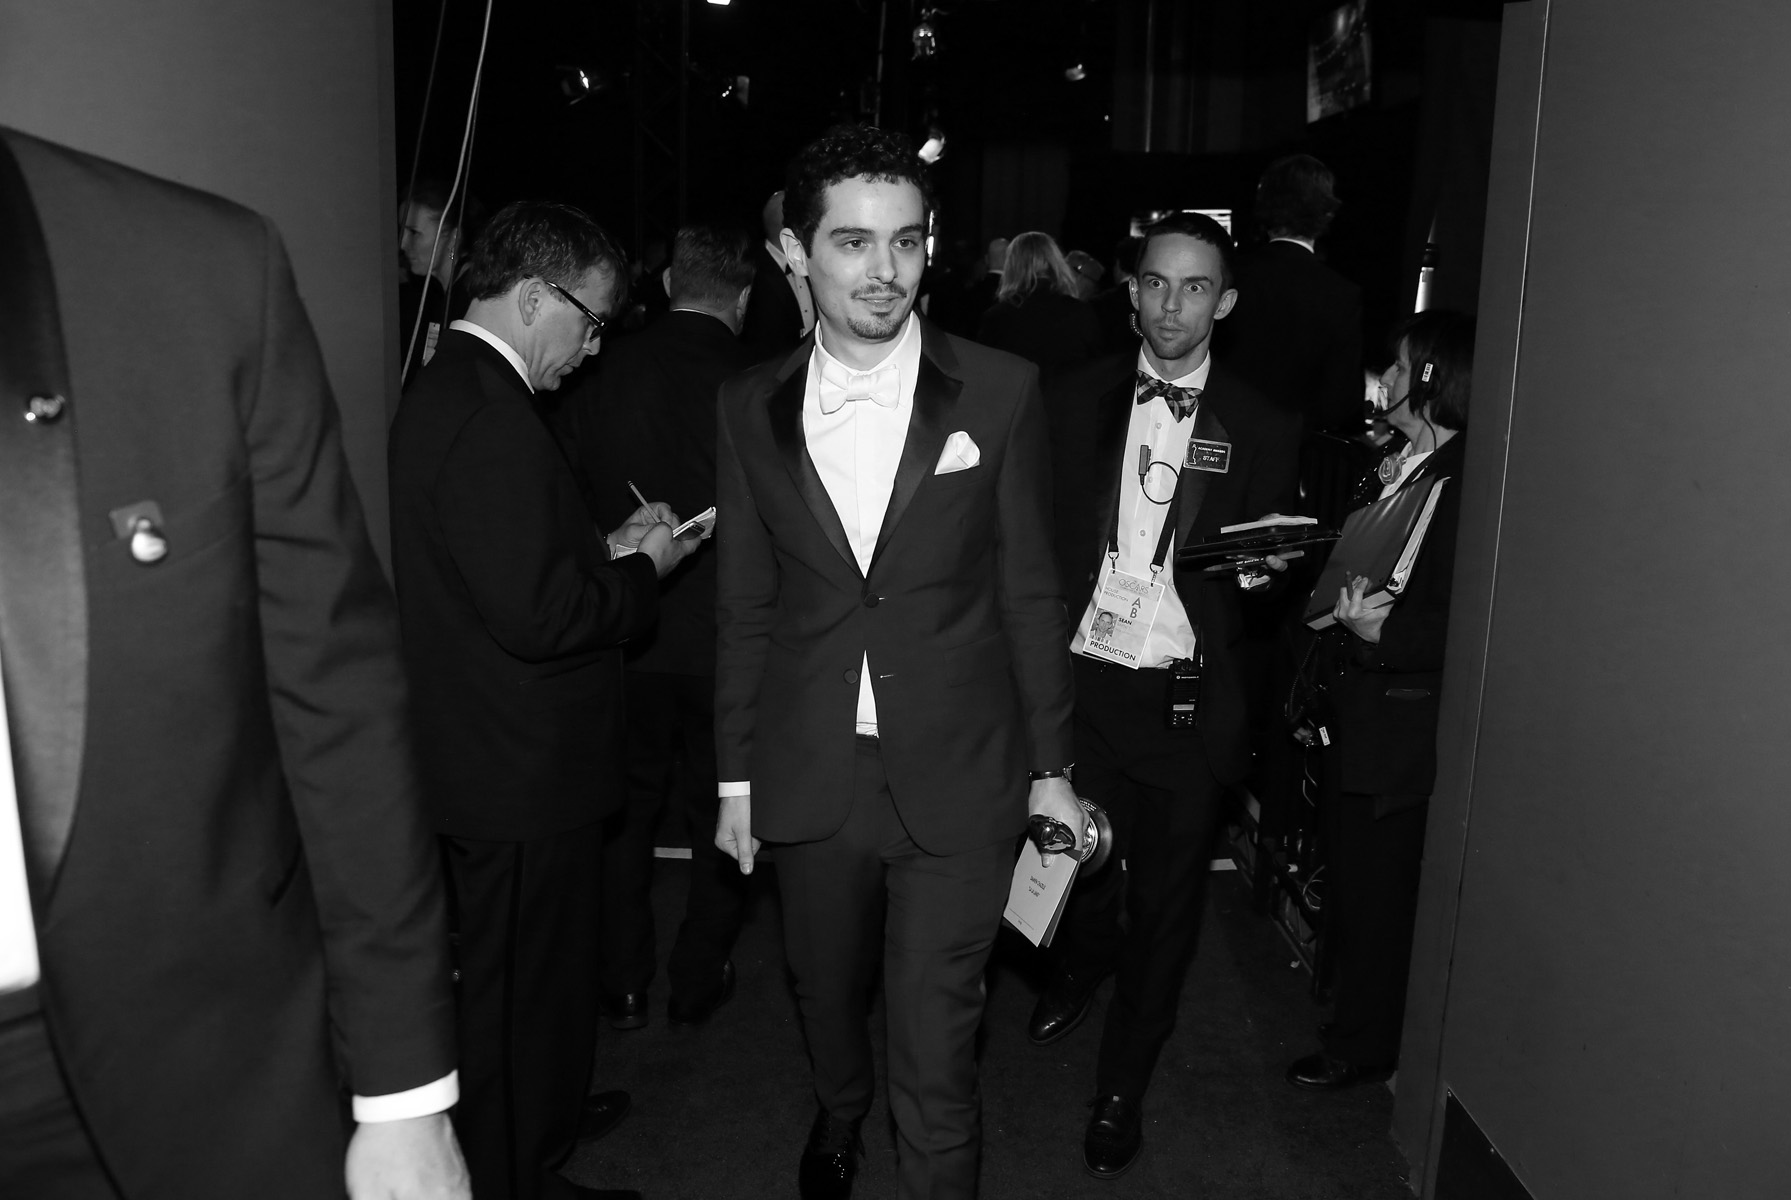 Damien Chazelle, winner of the award for best director for {quote}La La Land{quote}, appears backstage at the Oscars on Sunday, Feb. 26, 2017, at the Dolby Theatre in Los Angeles. (Photo by Matt Sayles/Invision/AP)